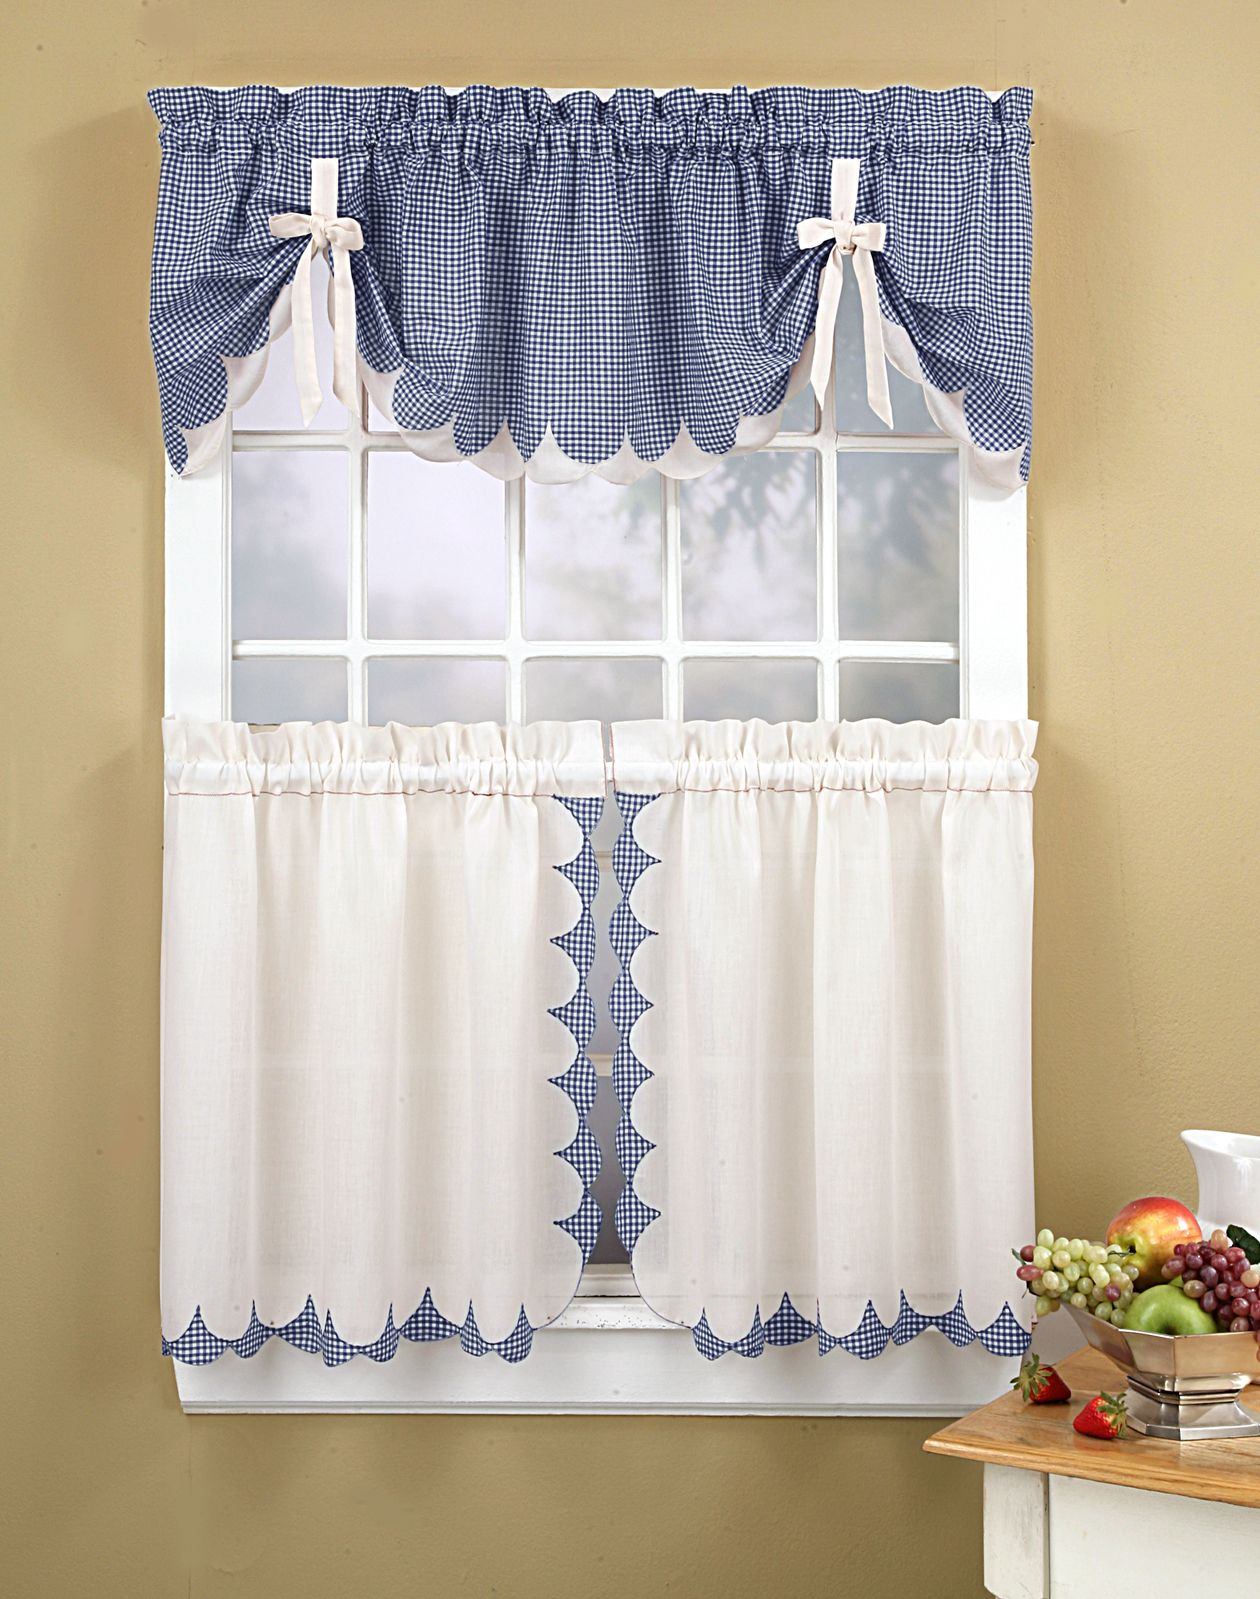 Kitchen Curtains Ideas Modern Part - 26: Kitchen Curtains | Tabitha 3-Piece Kitchen Curtain Tier Set /  Curtainworks.com I